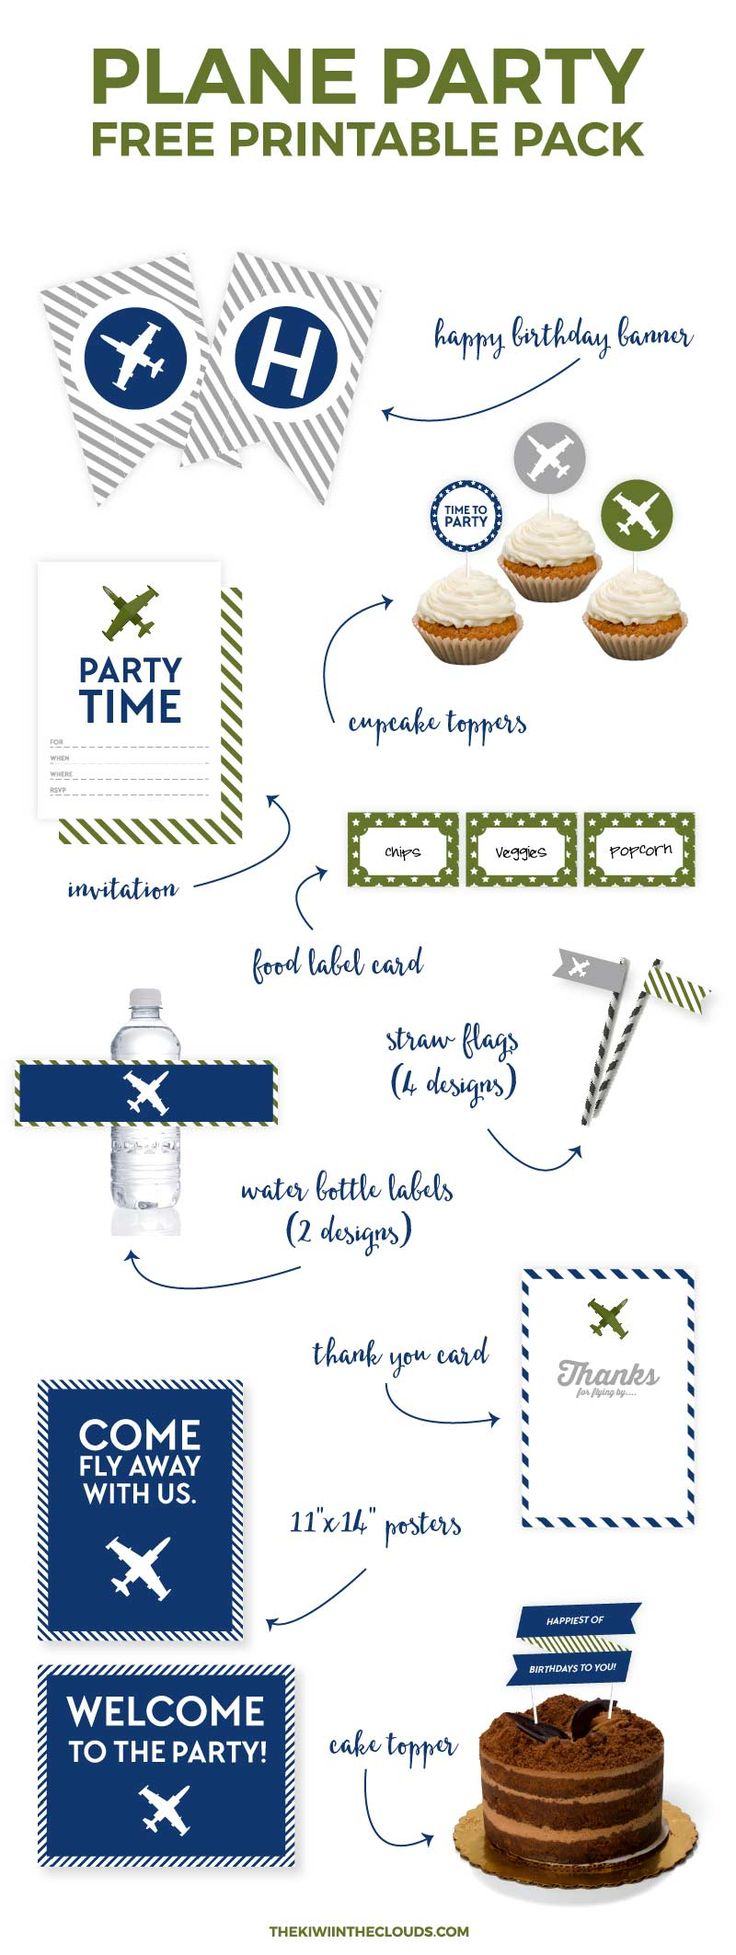 Printable airplane party backdrops party decorations diy template - Put Together That Airplane Birthday Party That Your Son Has Always Dreamed Of In An Instant With This 30 Piece Free Printable Party Package